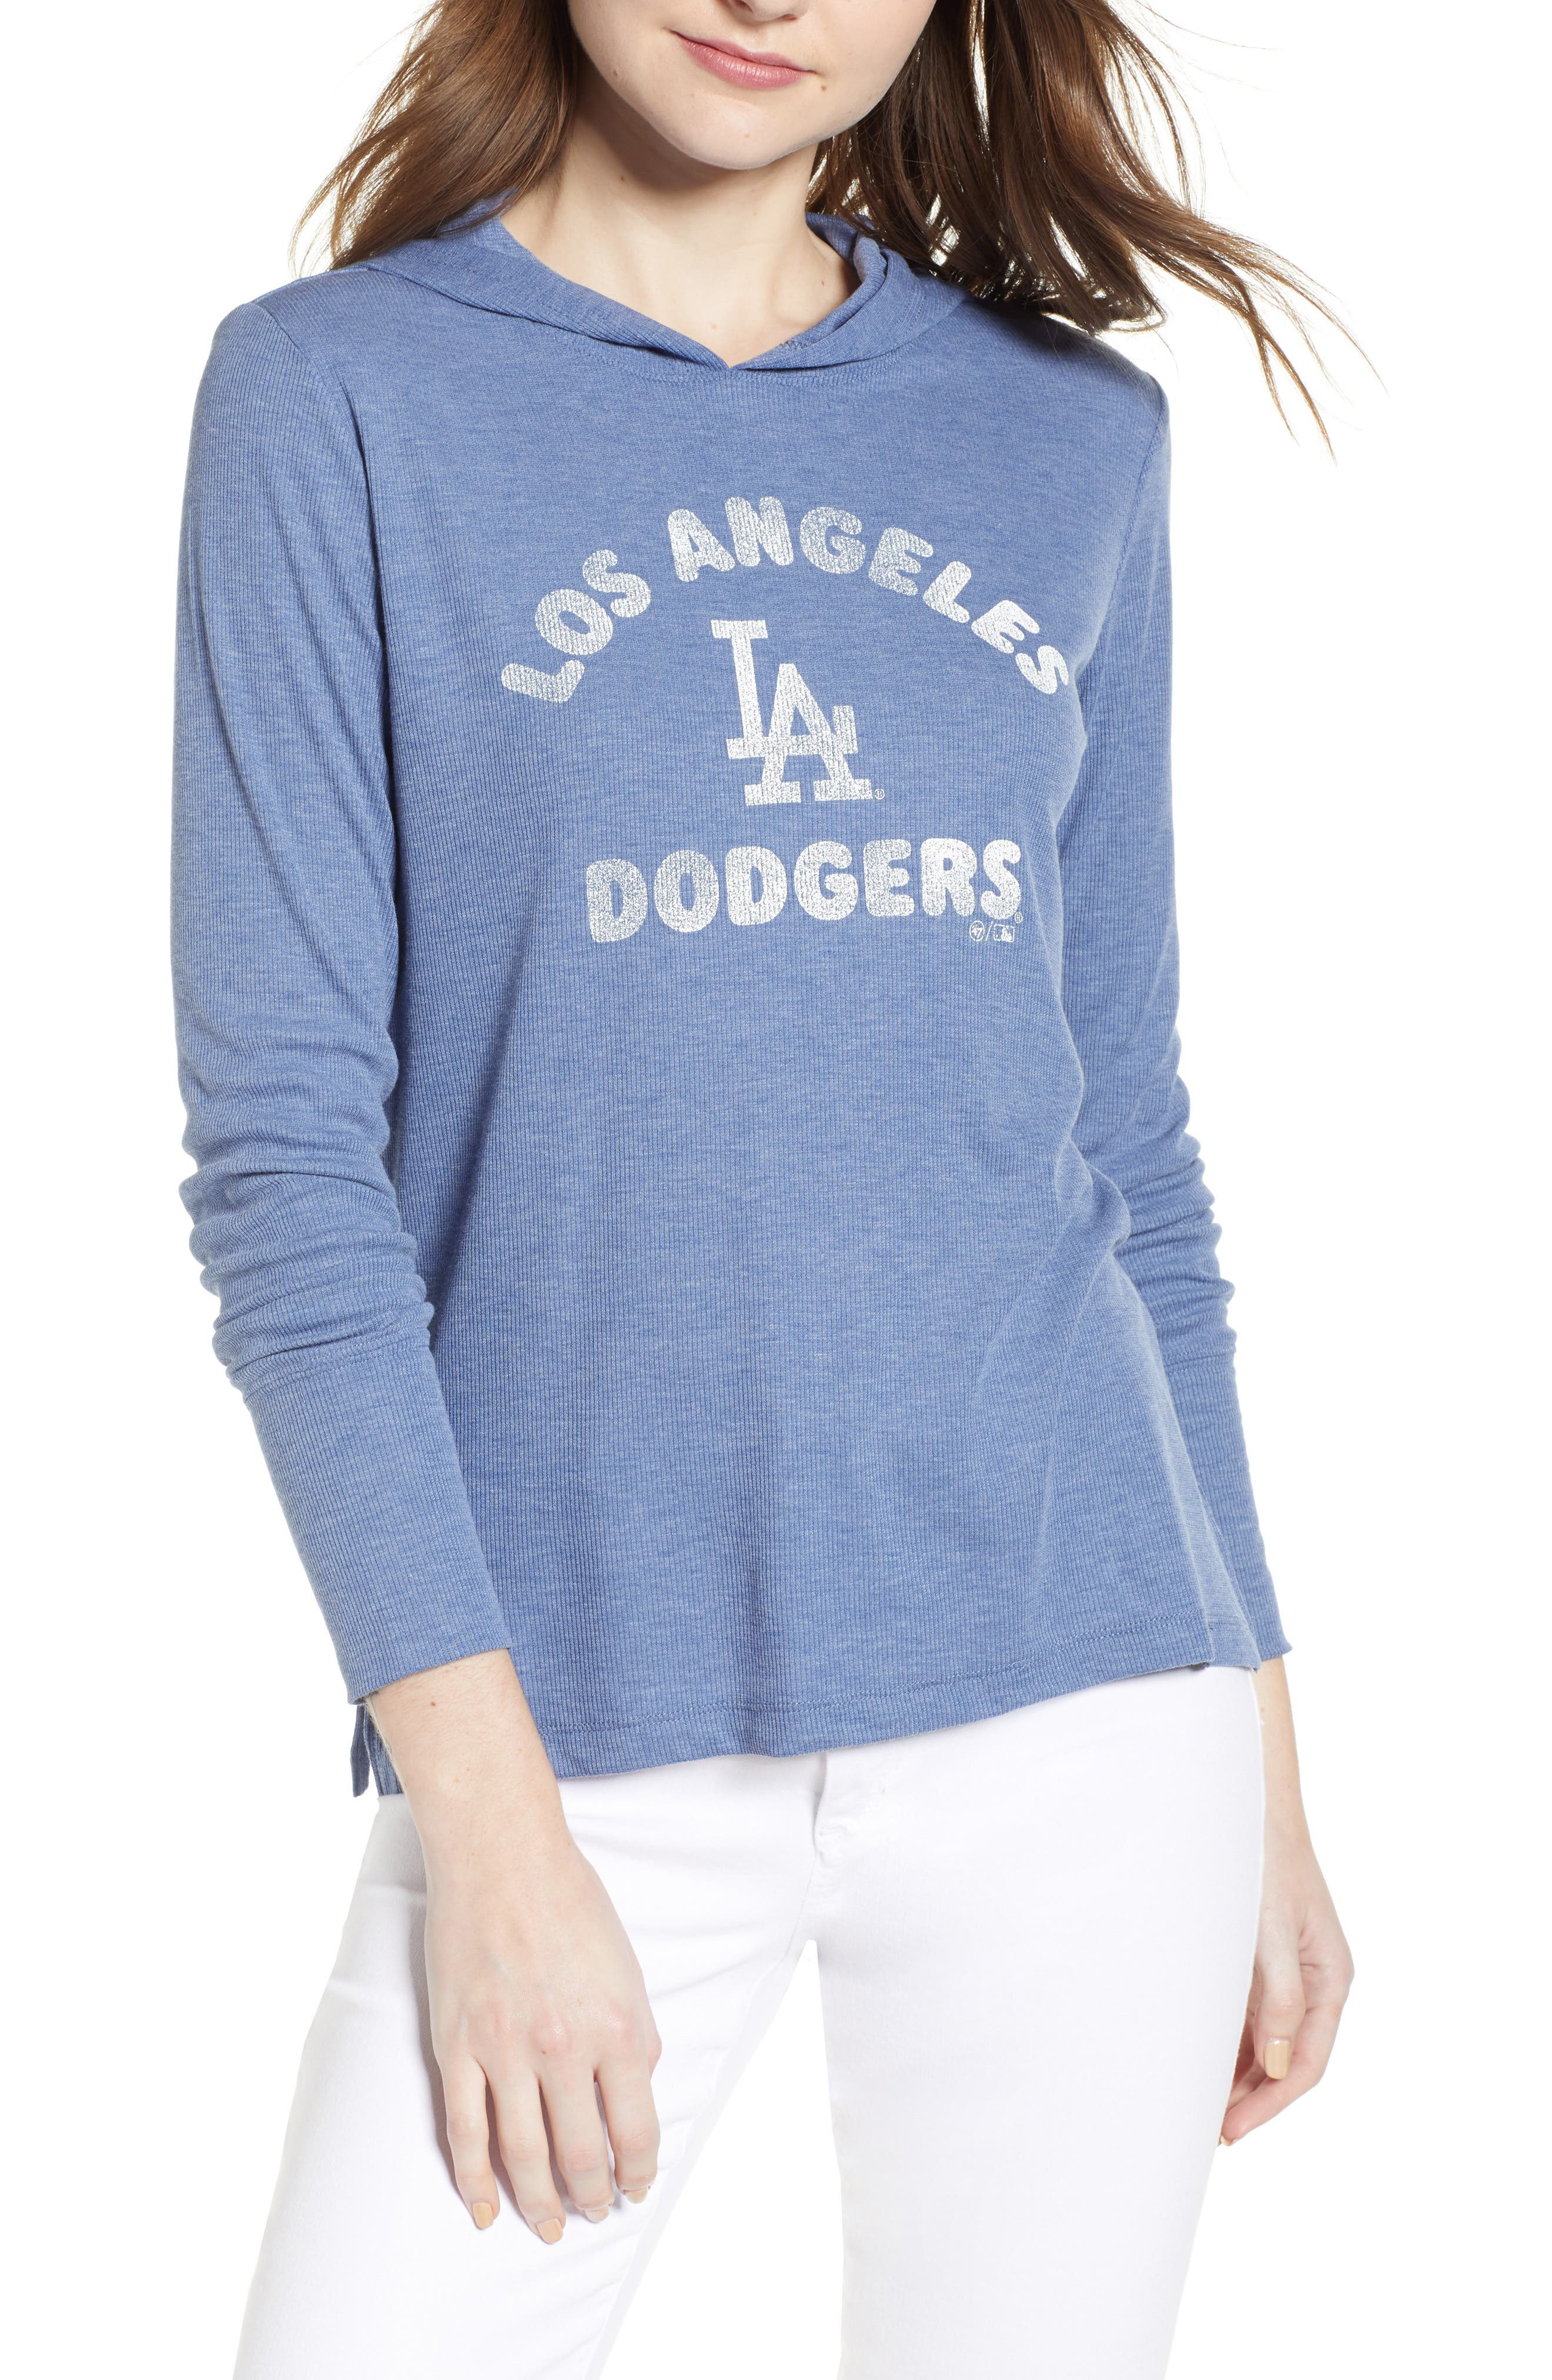 Campbell Los Angeles Dodgers Rib Knit Hooded Top,                         Main,                         color, 400